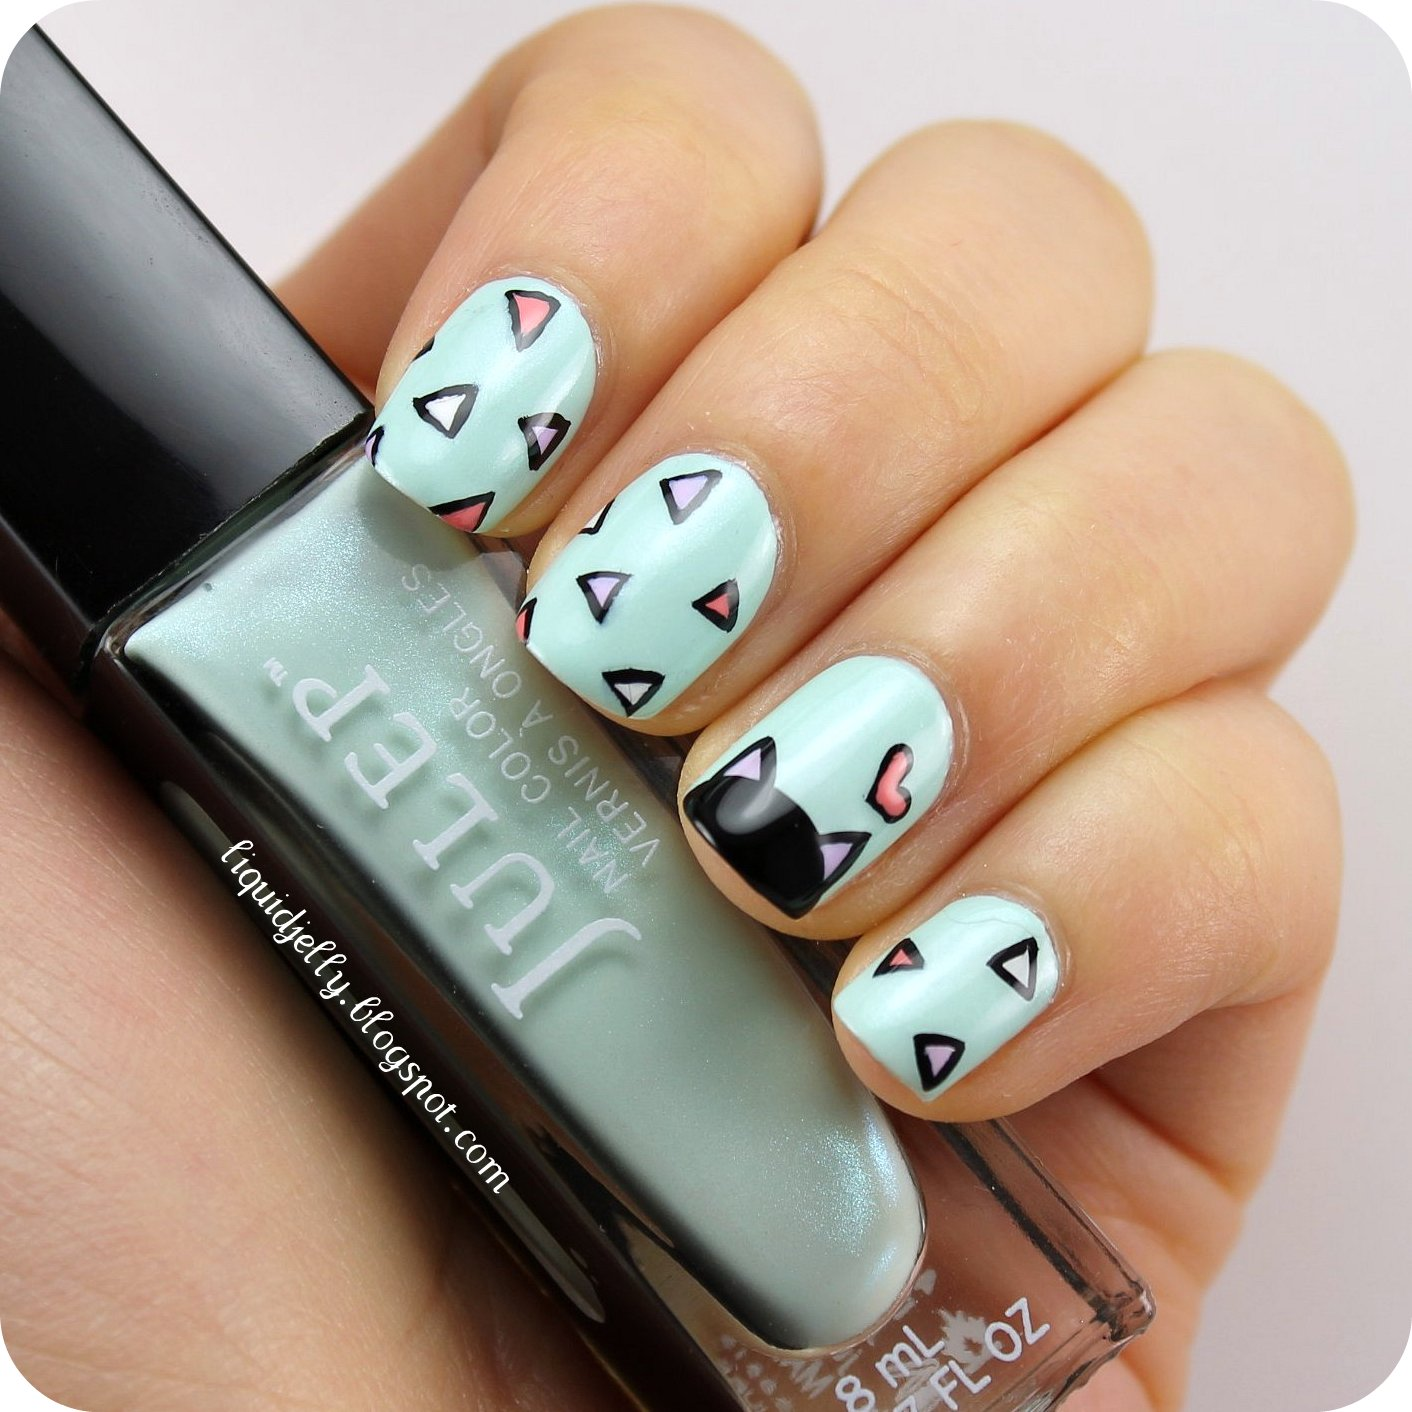 The Extraordinary Simple glamour nail art designs Digital Photography